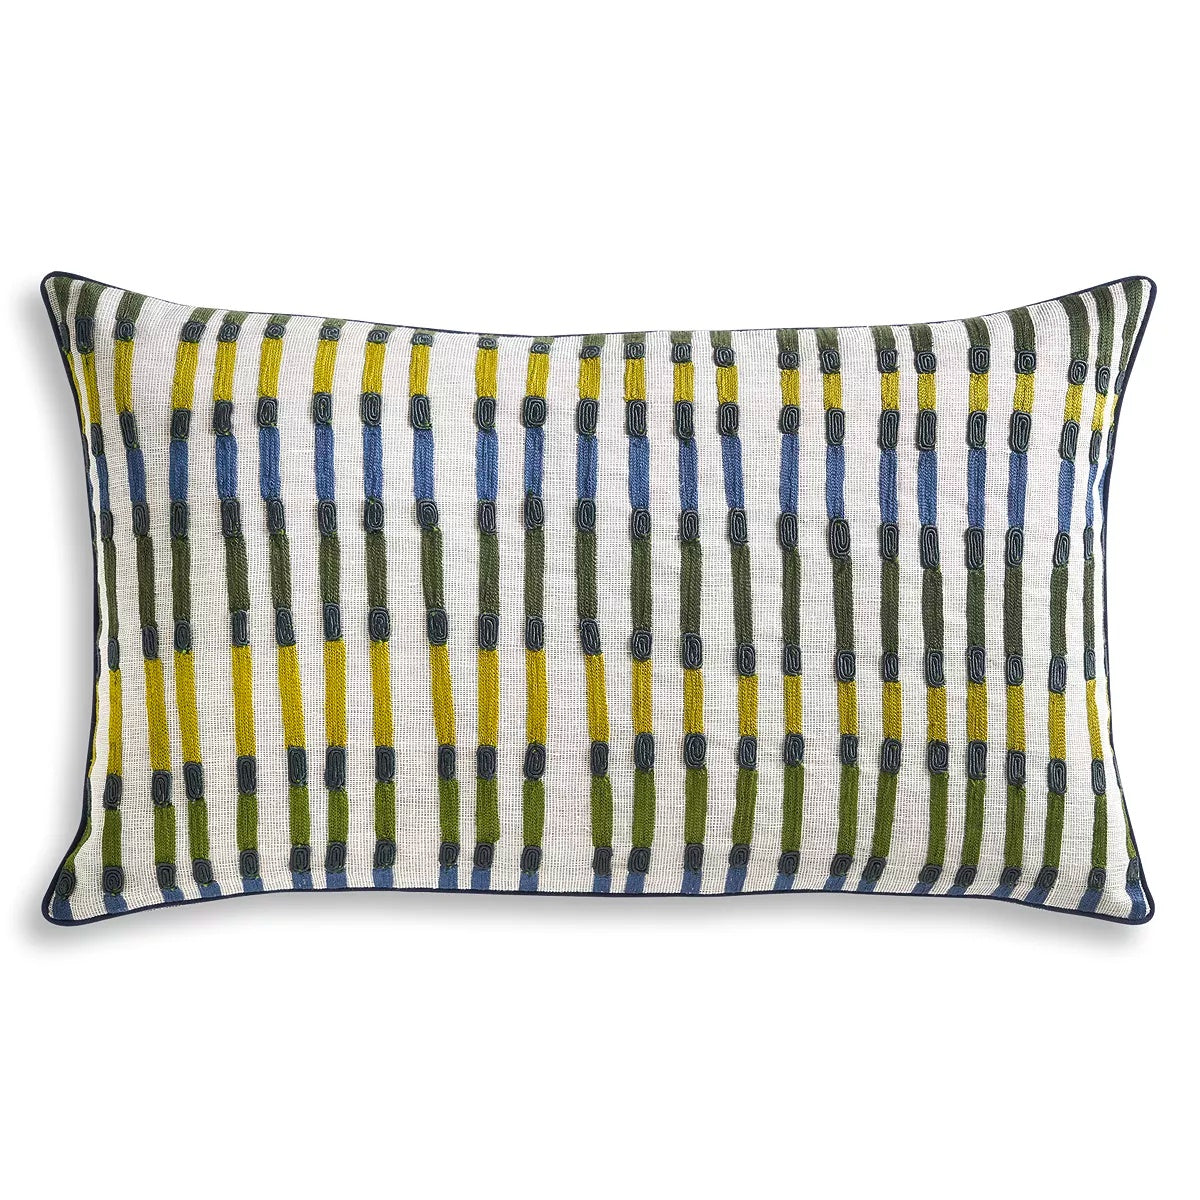 Yves Delorme Tonga Decorative Pillow